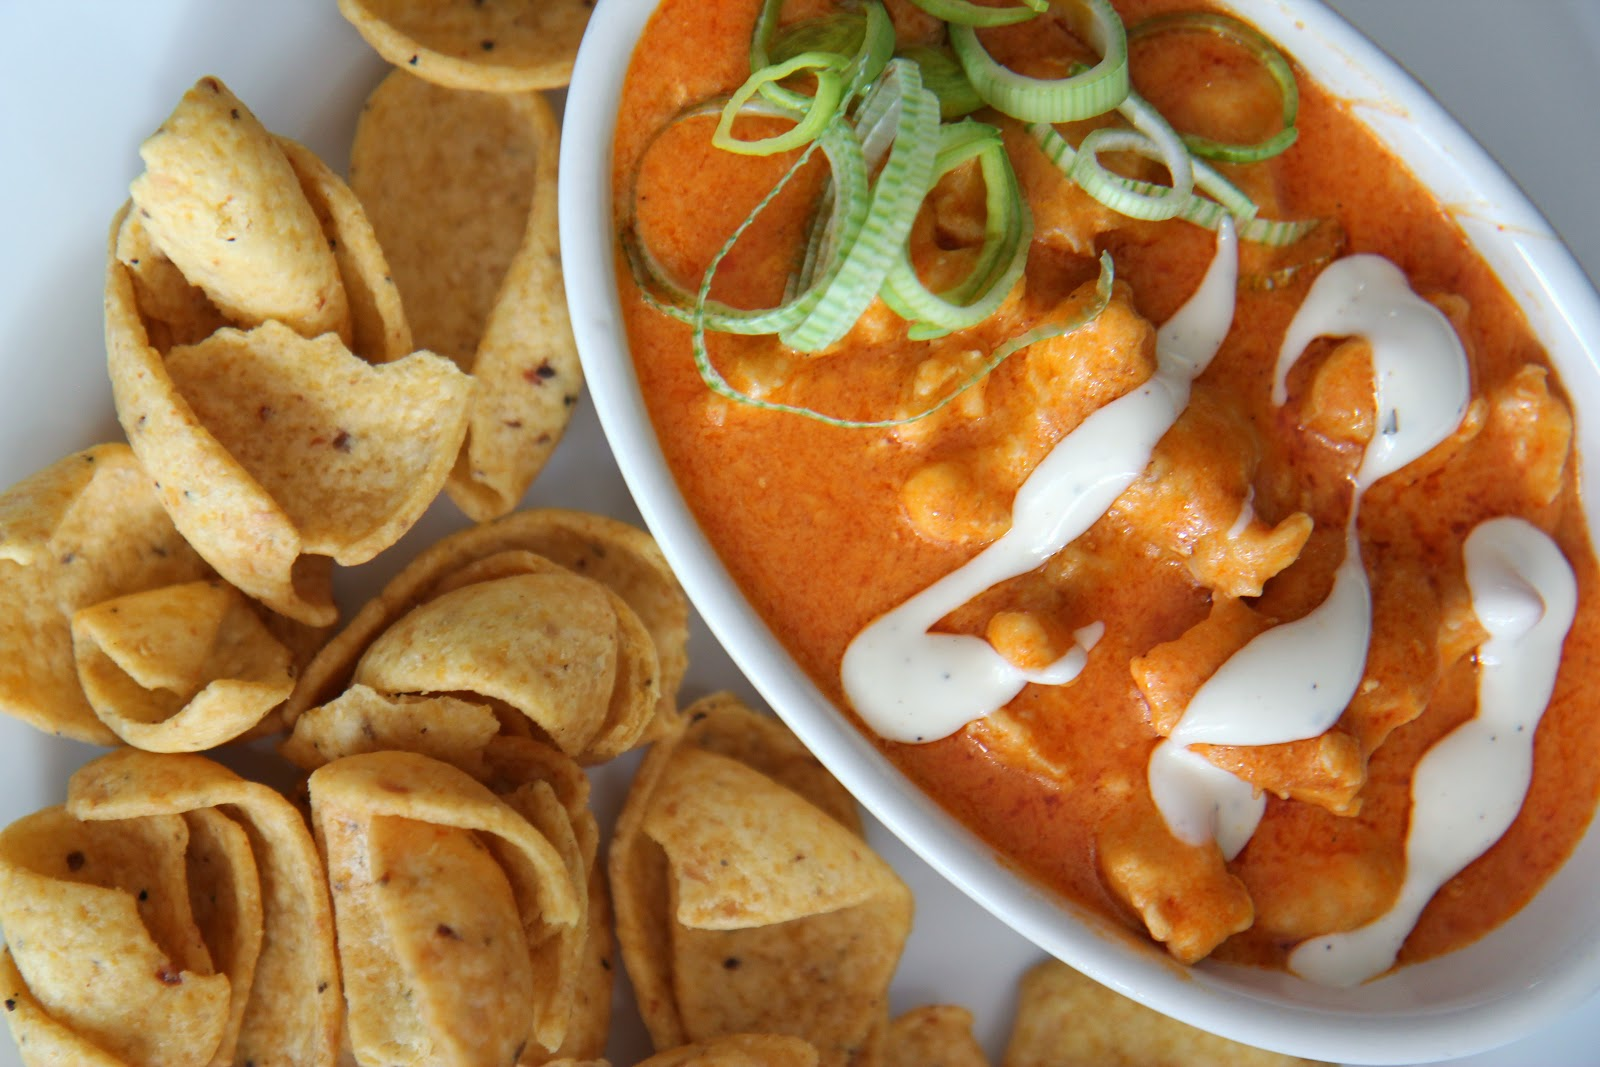 Celebrate the big game with this delicious Frito-garnished dip, made to taste like your favorite Buffalo-style chicken!